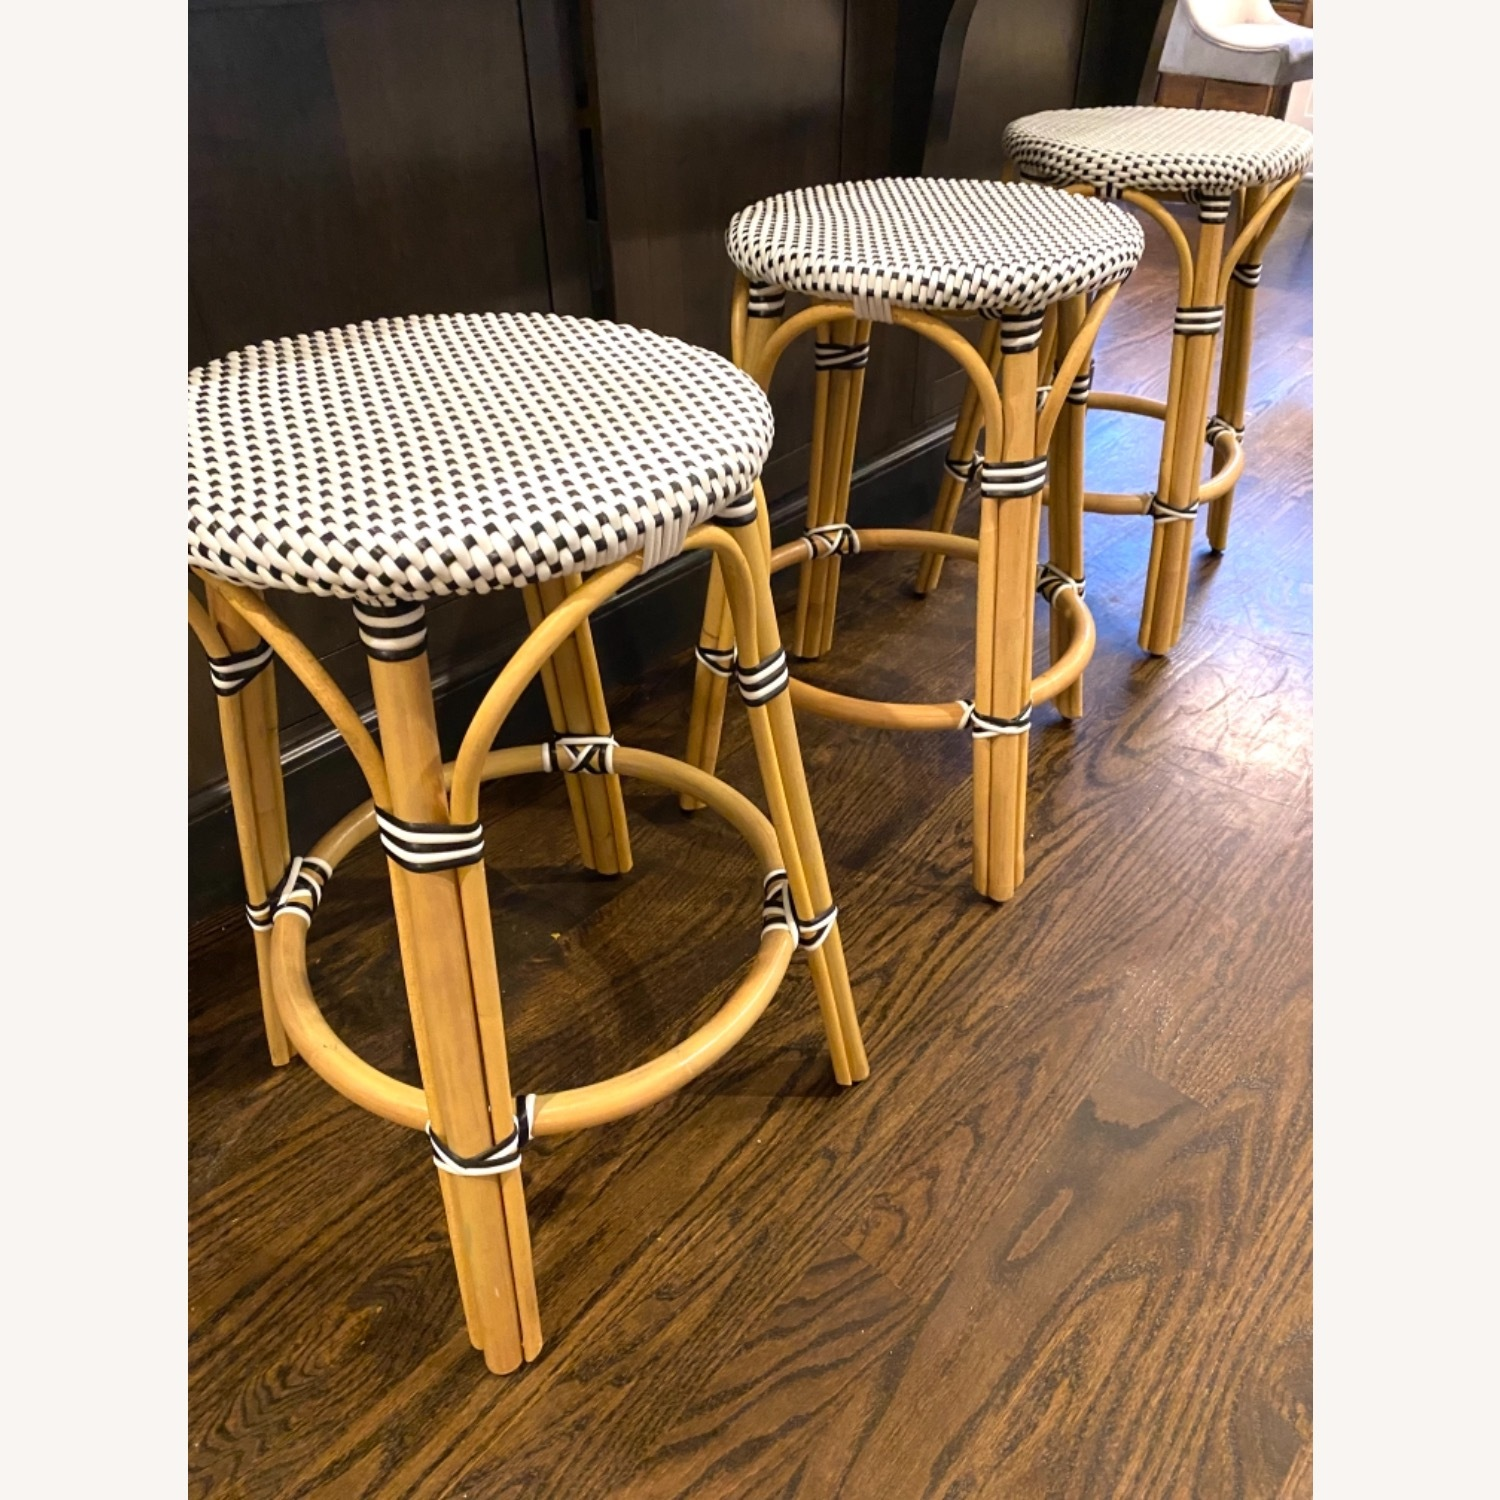 Wayfair (Serena Lily style) Counter Stools - image-2